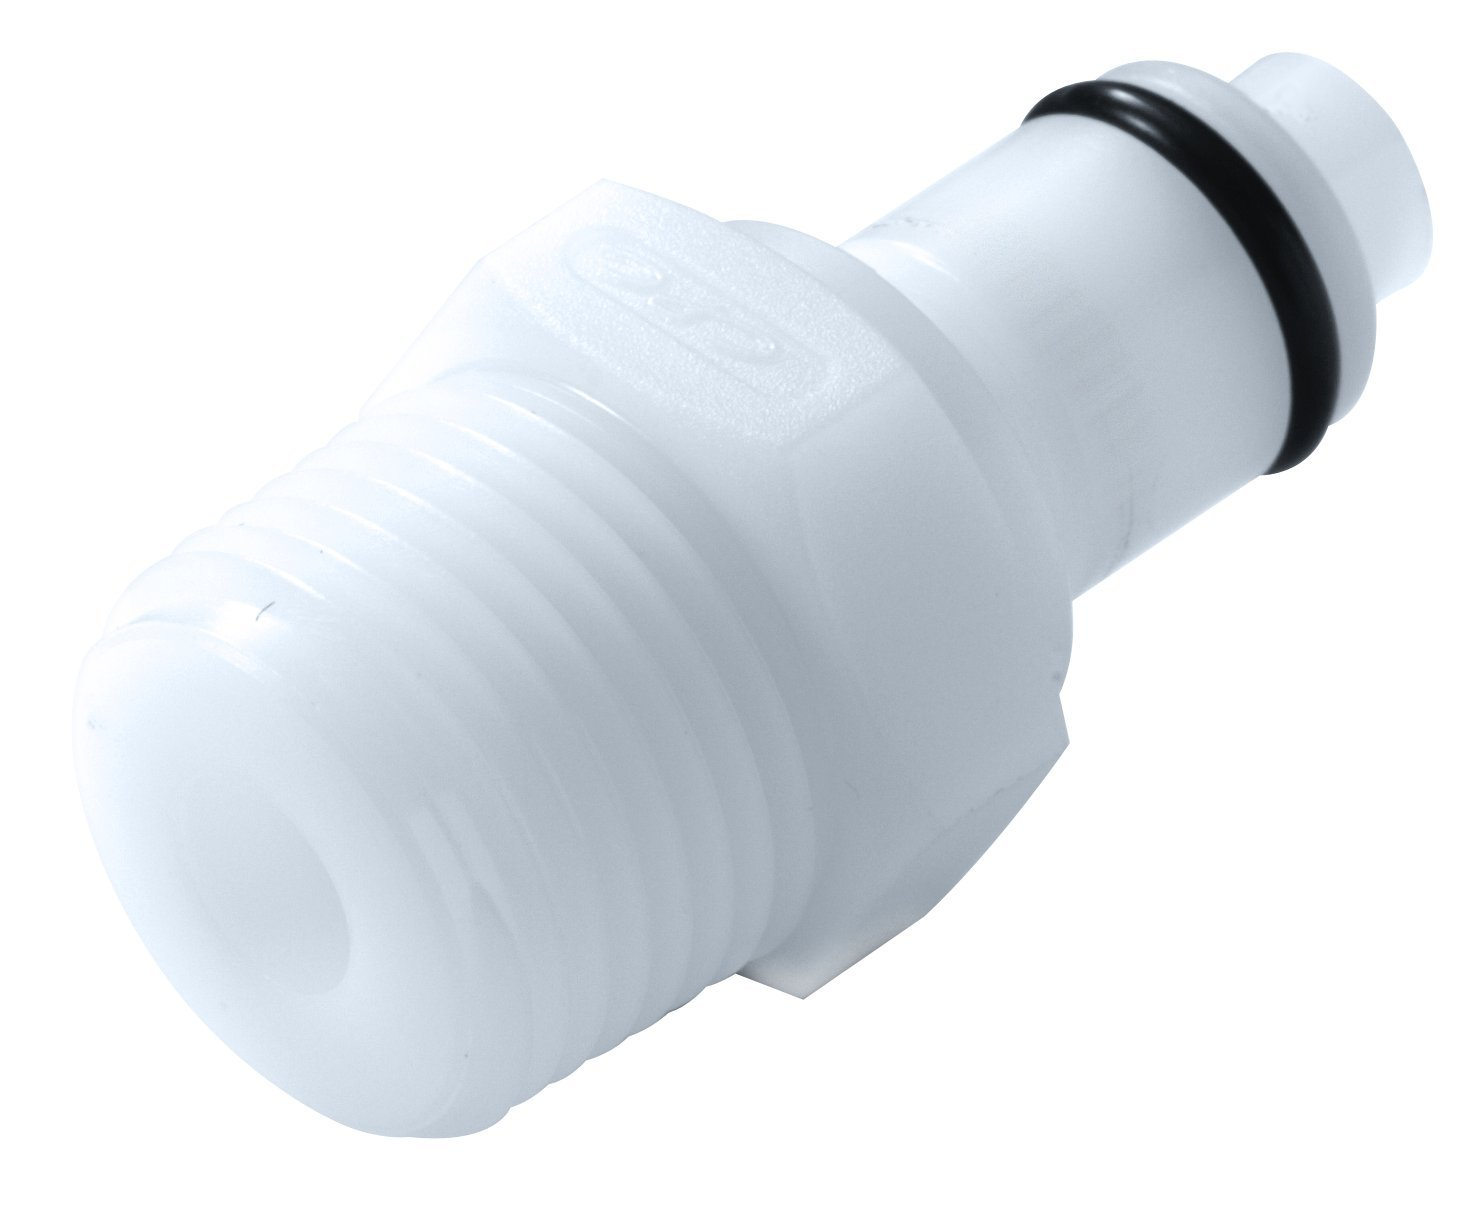 Colder PMC2404 Acetal Tube Fitting, Insert, Straight Thru, In-Line, 1/8'' Insert x 1/4'' NPT Male by Colder Products Company